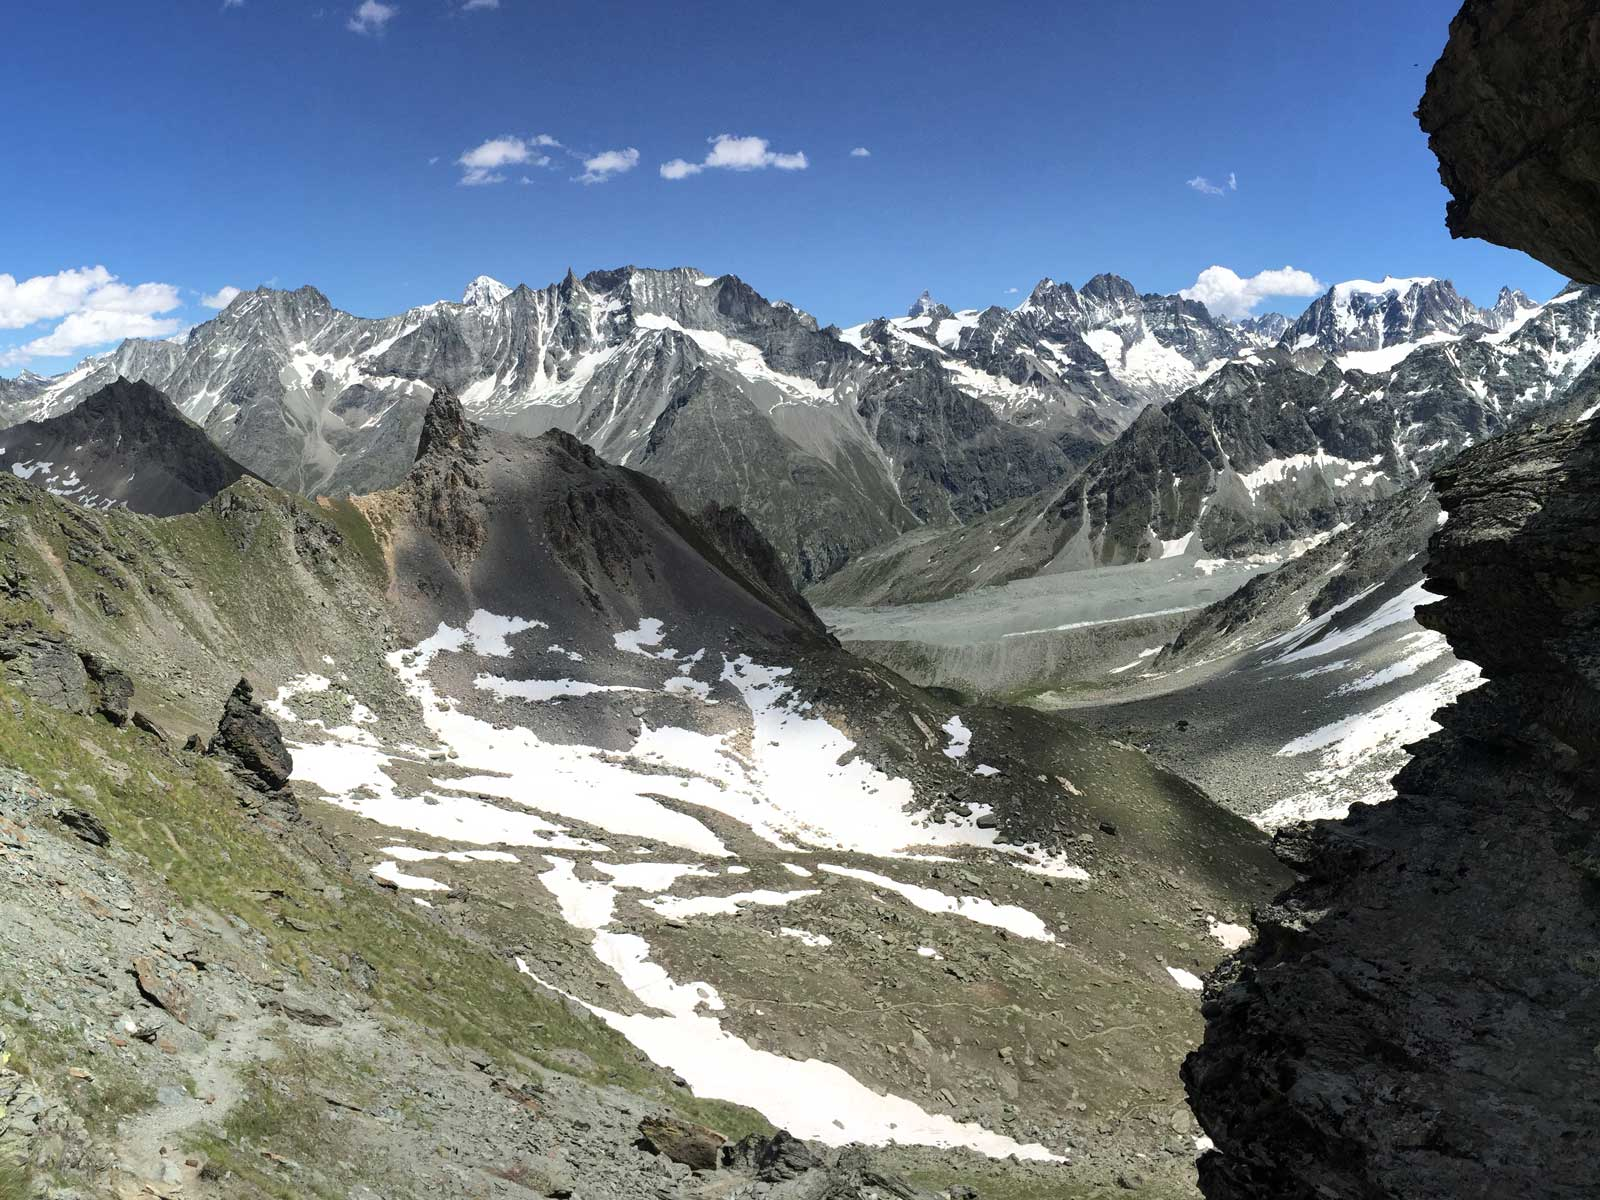 View trekking down to Arolla on self-guided Haute Route to Zermatt